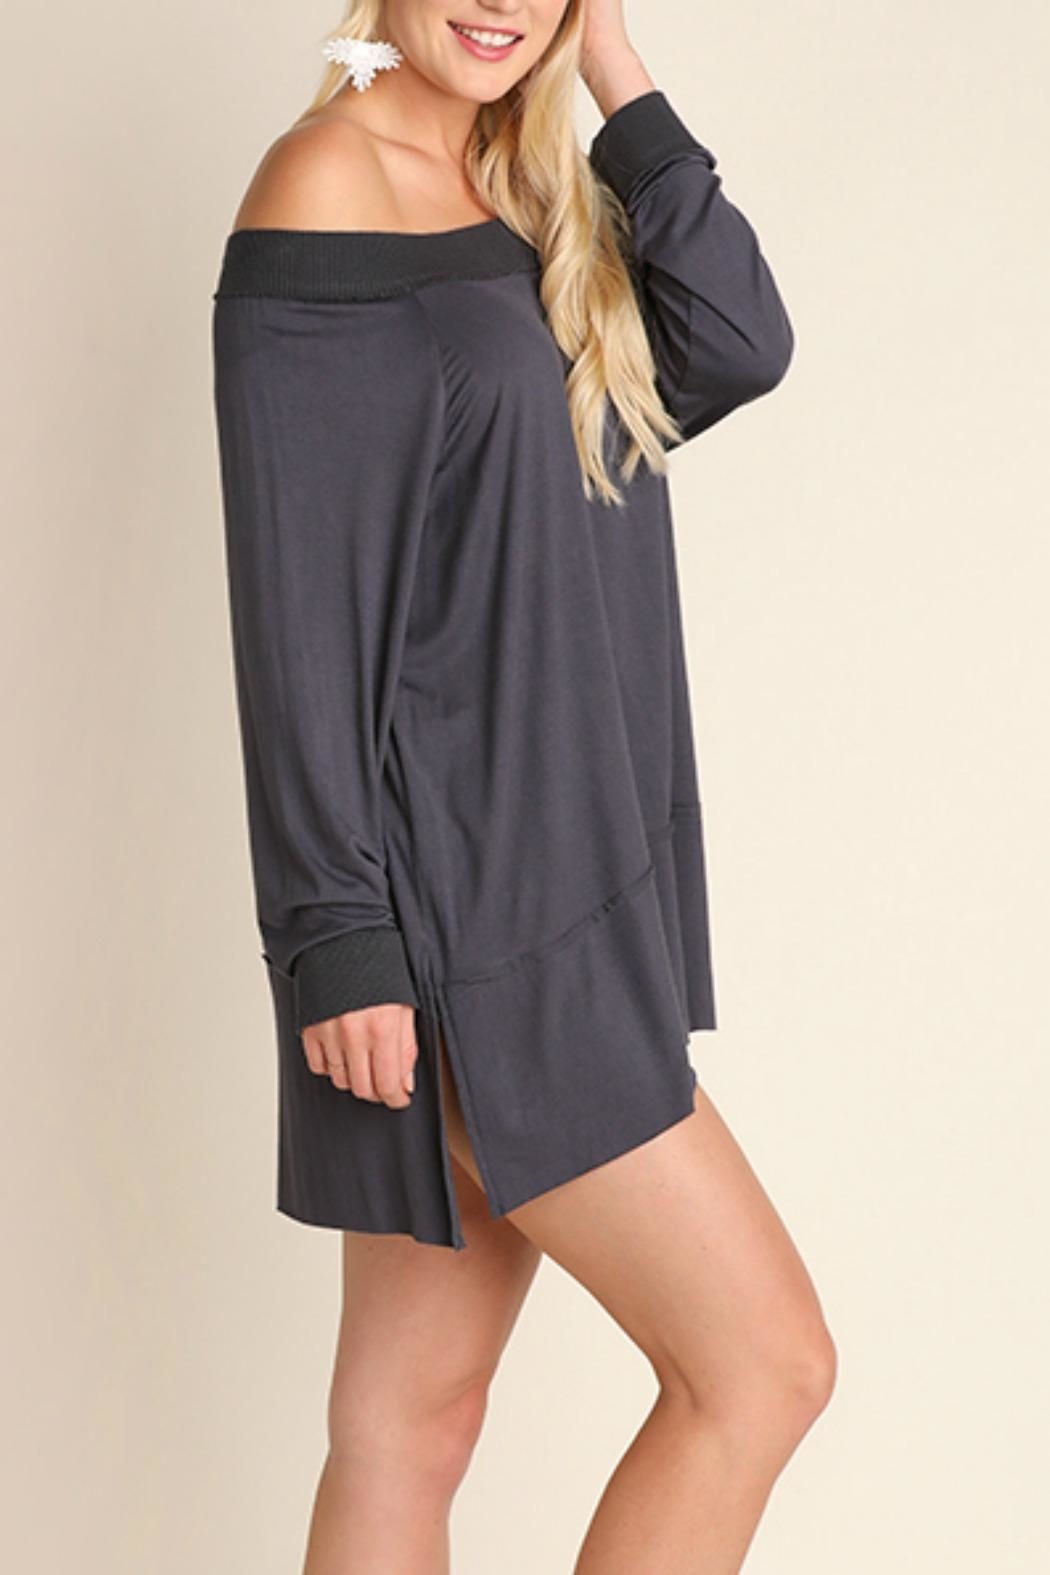 Umgee USA Off the Shoulder Classy Top - Front Cropped Image